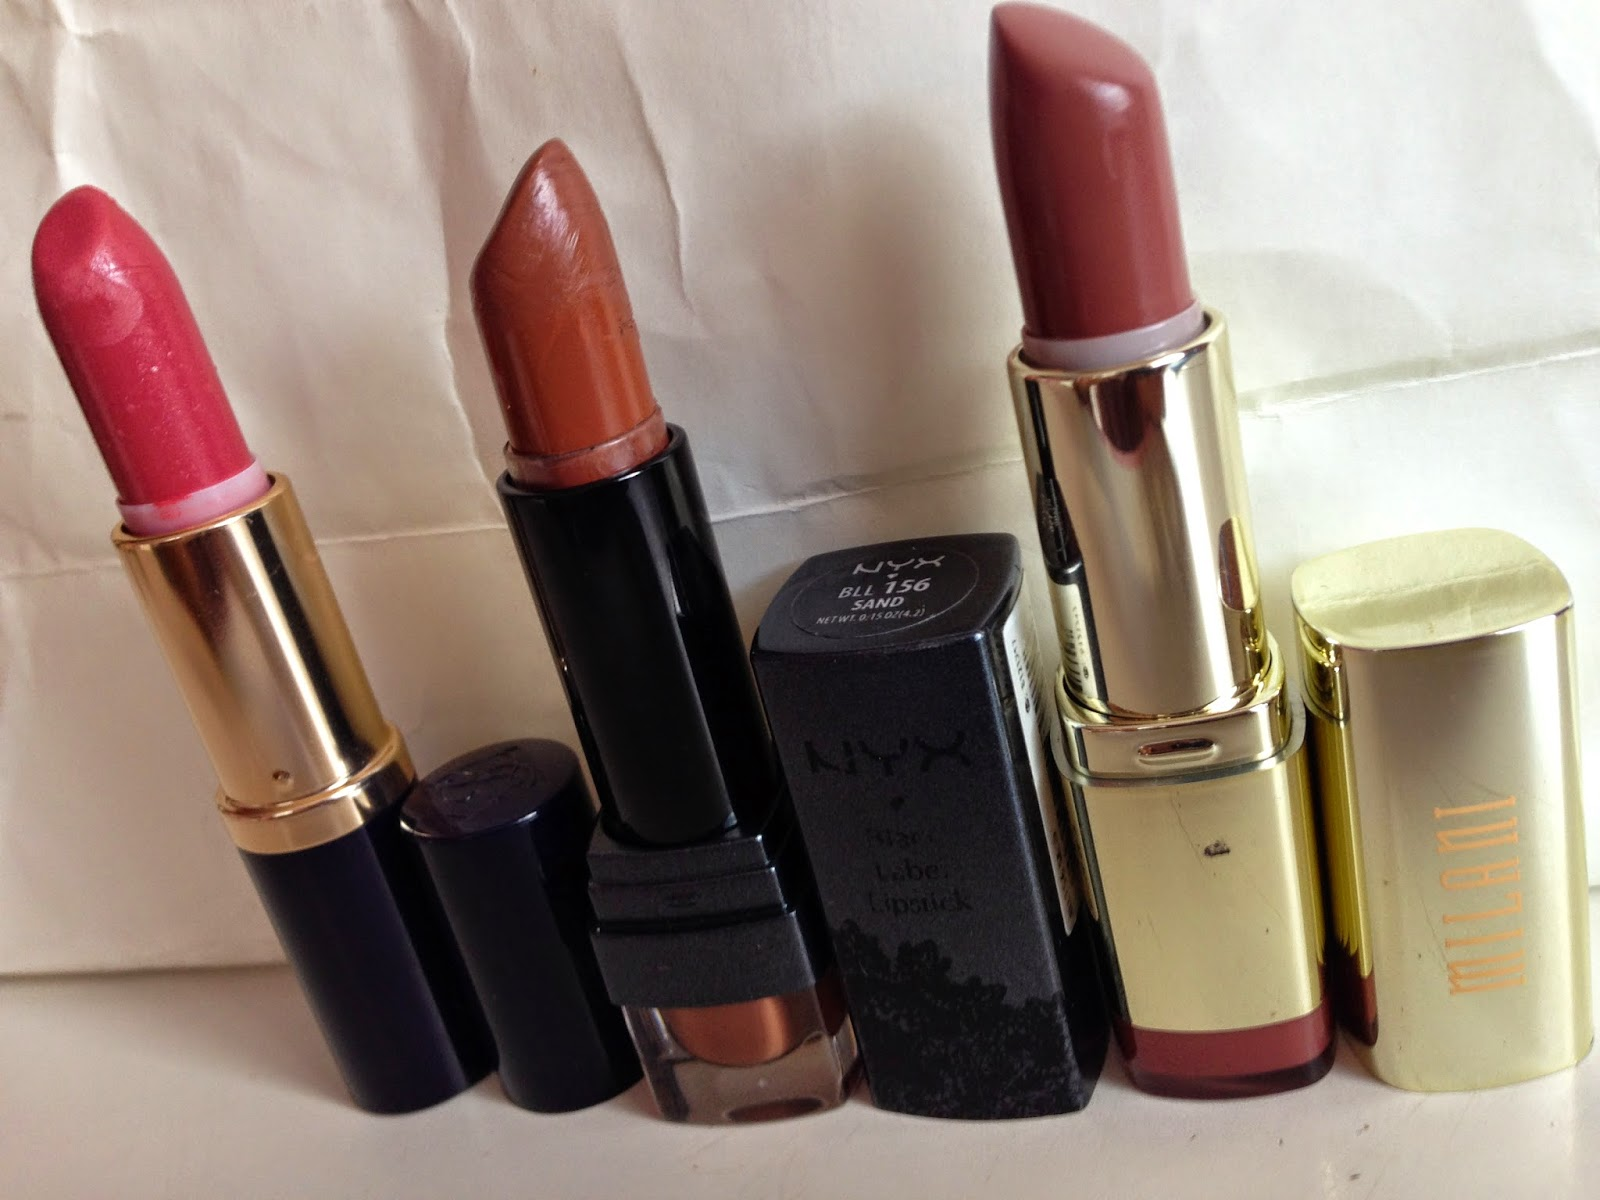 Estee Lauder Pure Color 'Blushing', NYX Black Label 'Sand' and Milani 'Teddy Bare' - www.modenmakeup.com